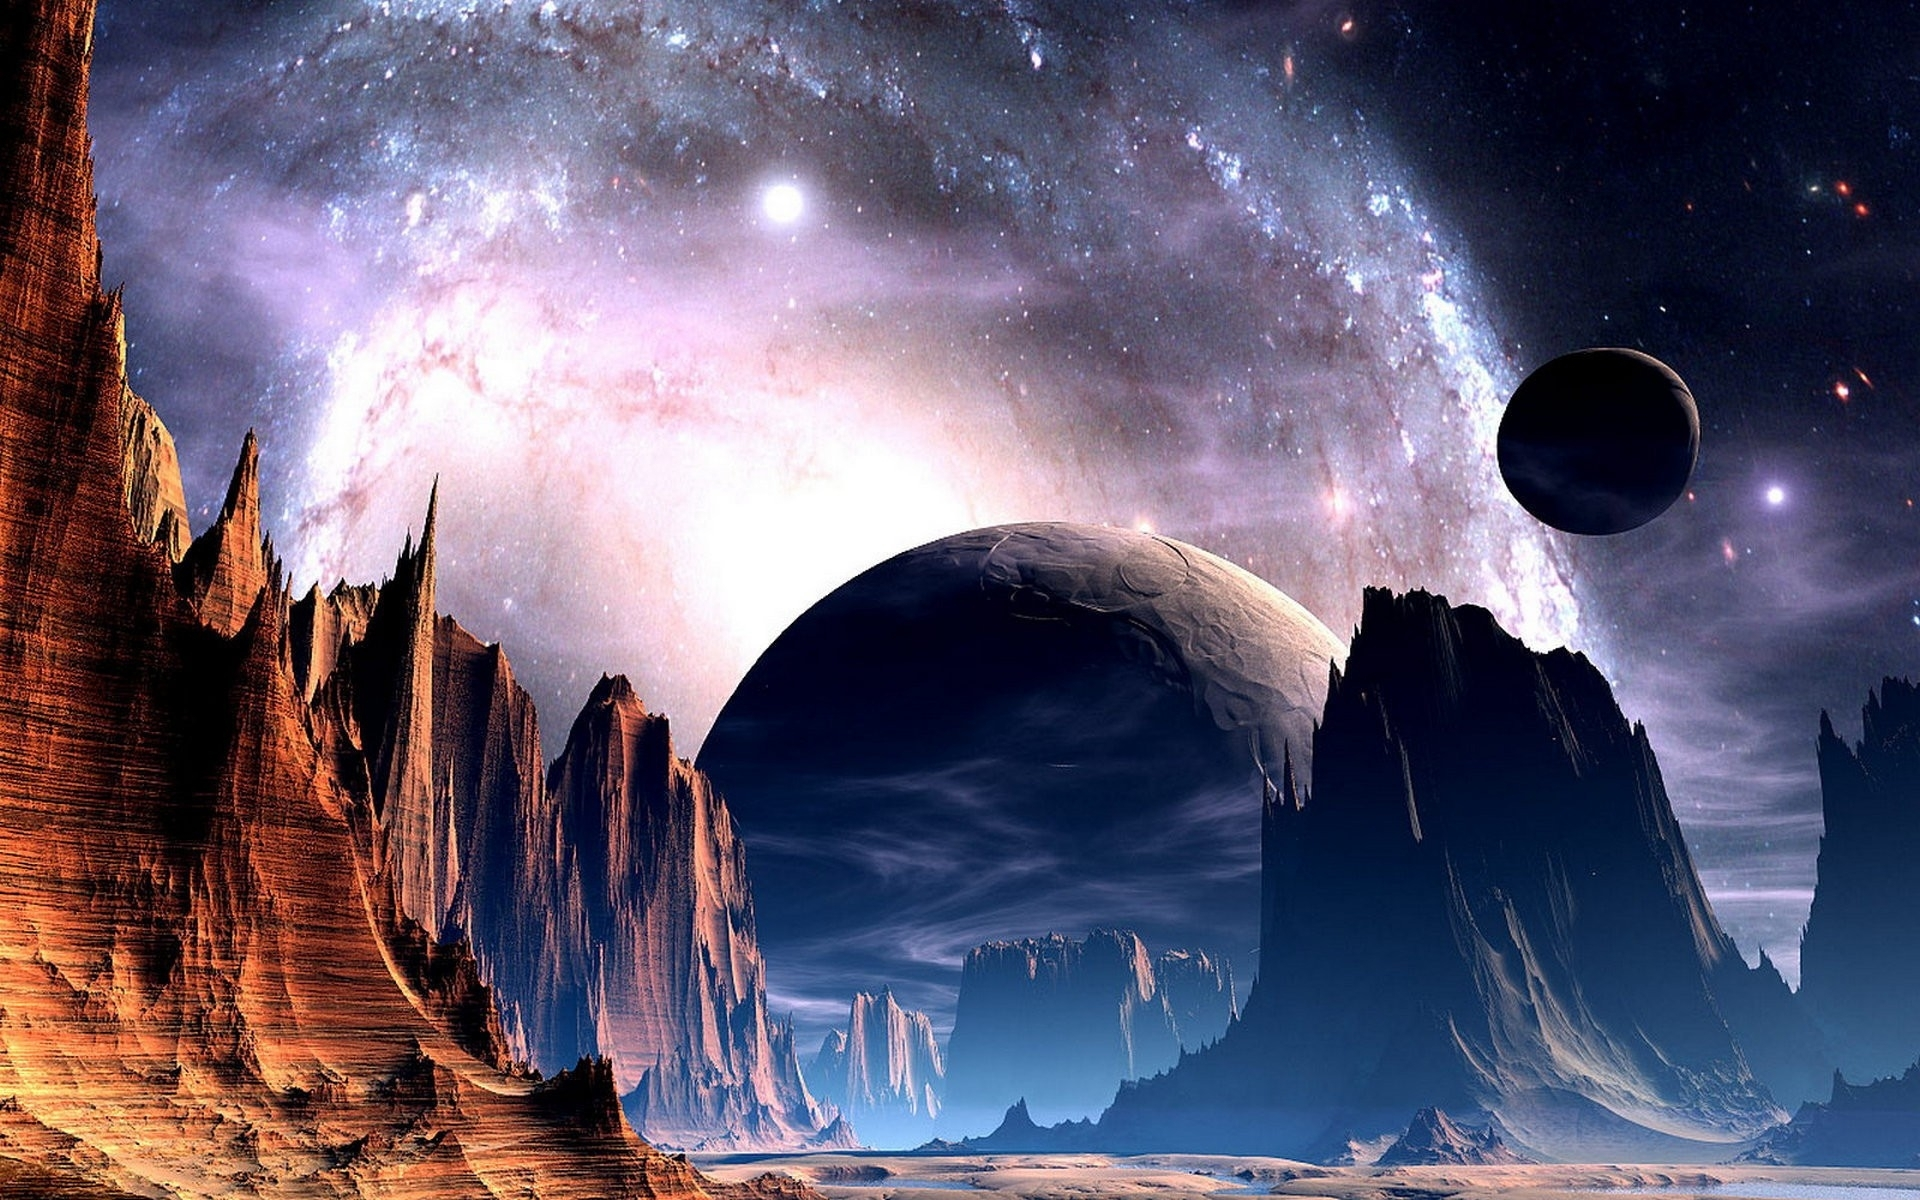 sci fi science fiction planets alien sky stars nebula galaxy space 1920x1200